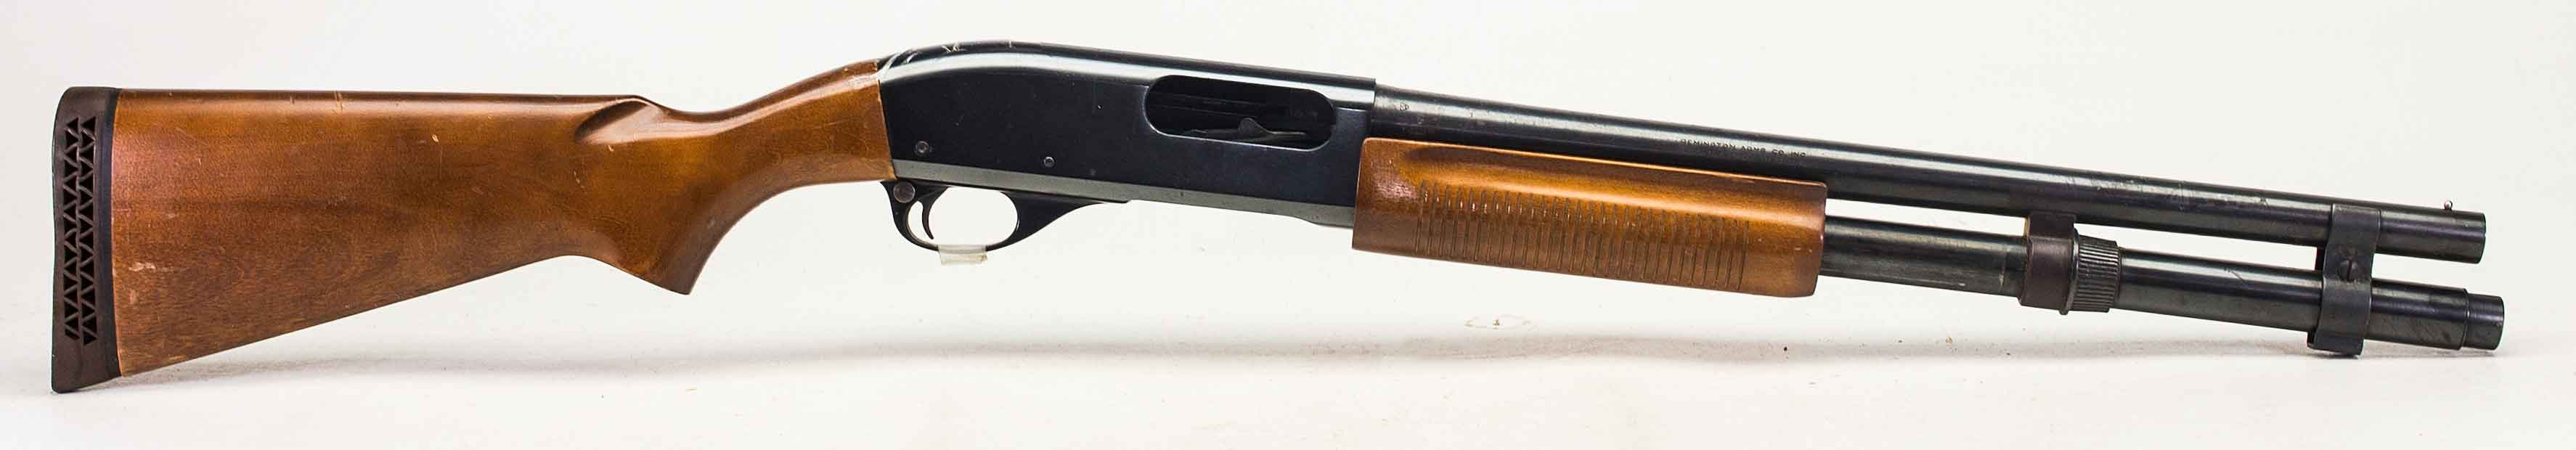 Remington 870 Wingmaster Auction Id 7822564 End Time Apr 20 Fotos Parts List Wallpapers View Full Size Images